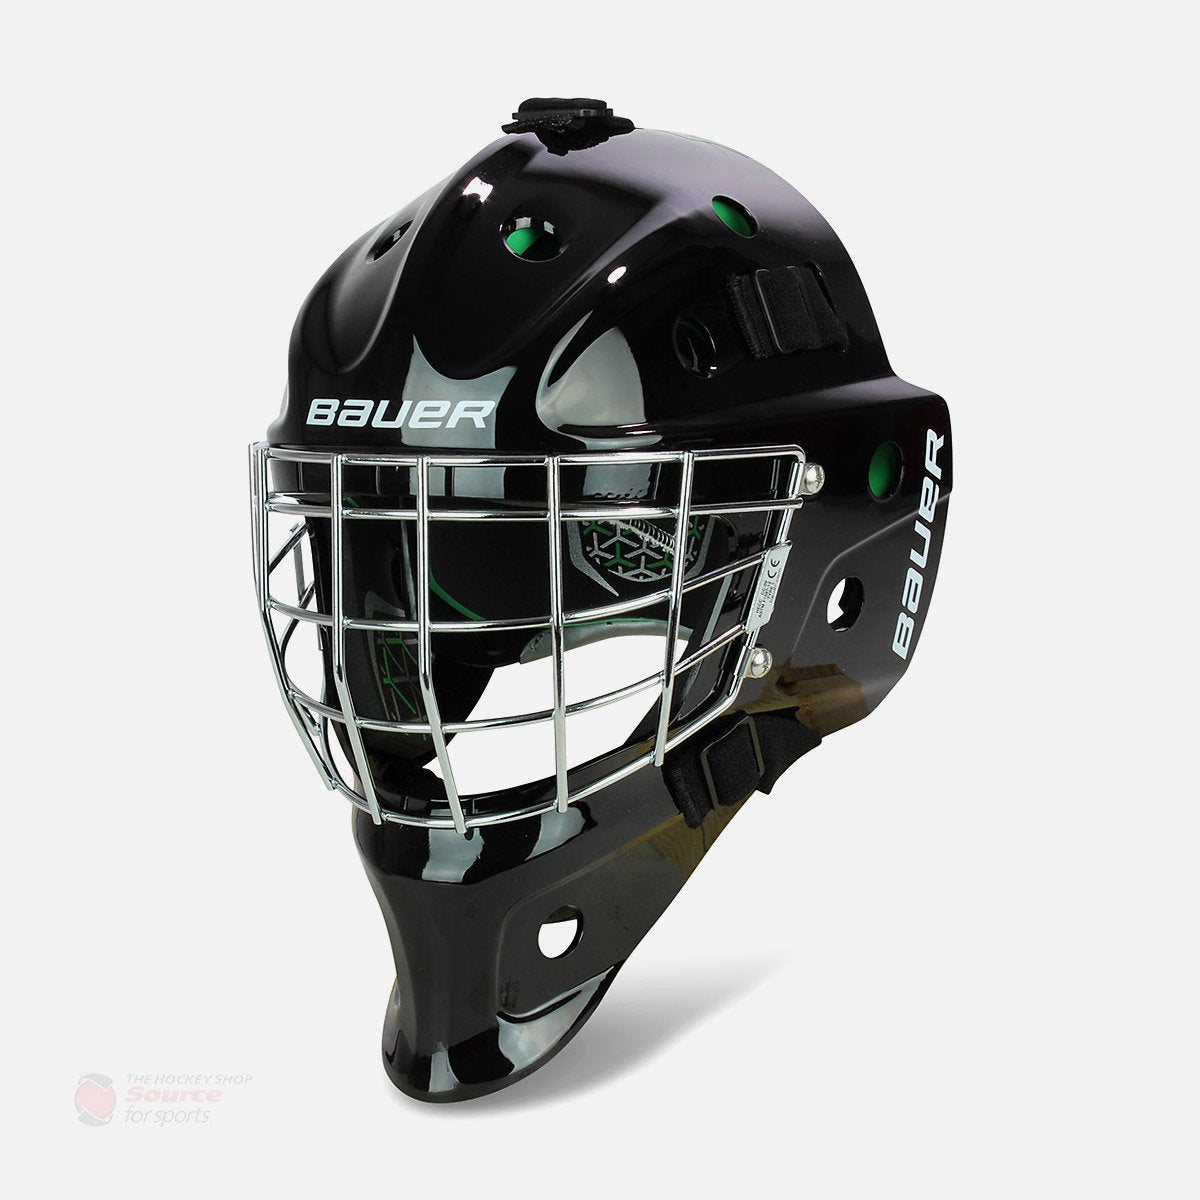 Bauer NME 4 Senior Goalie Mask - Black